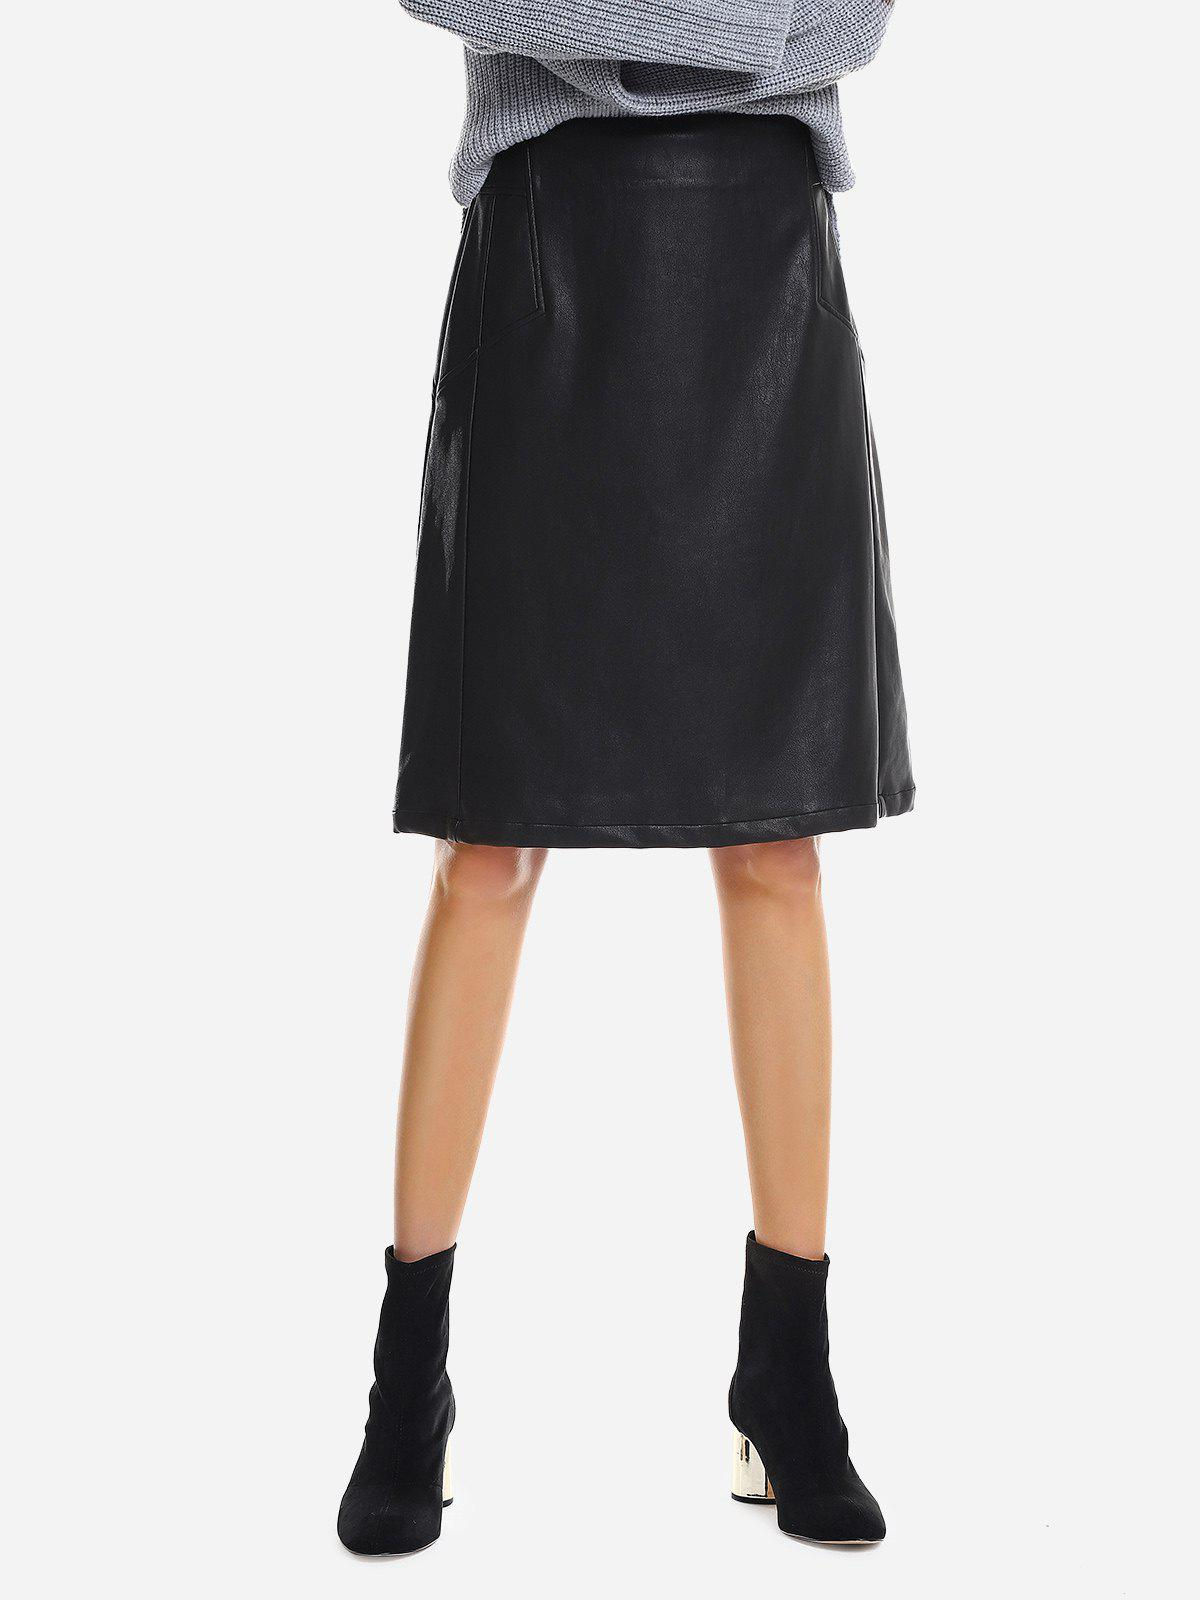 ZAN.STYLE Washed Leather Skirt - BLACK M